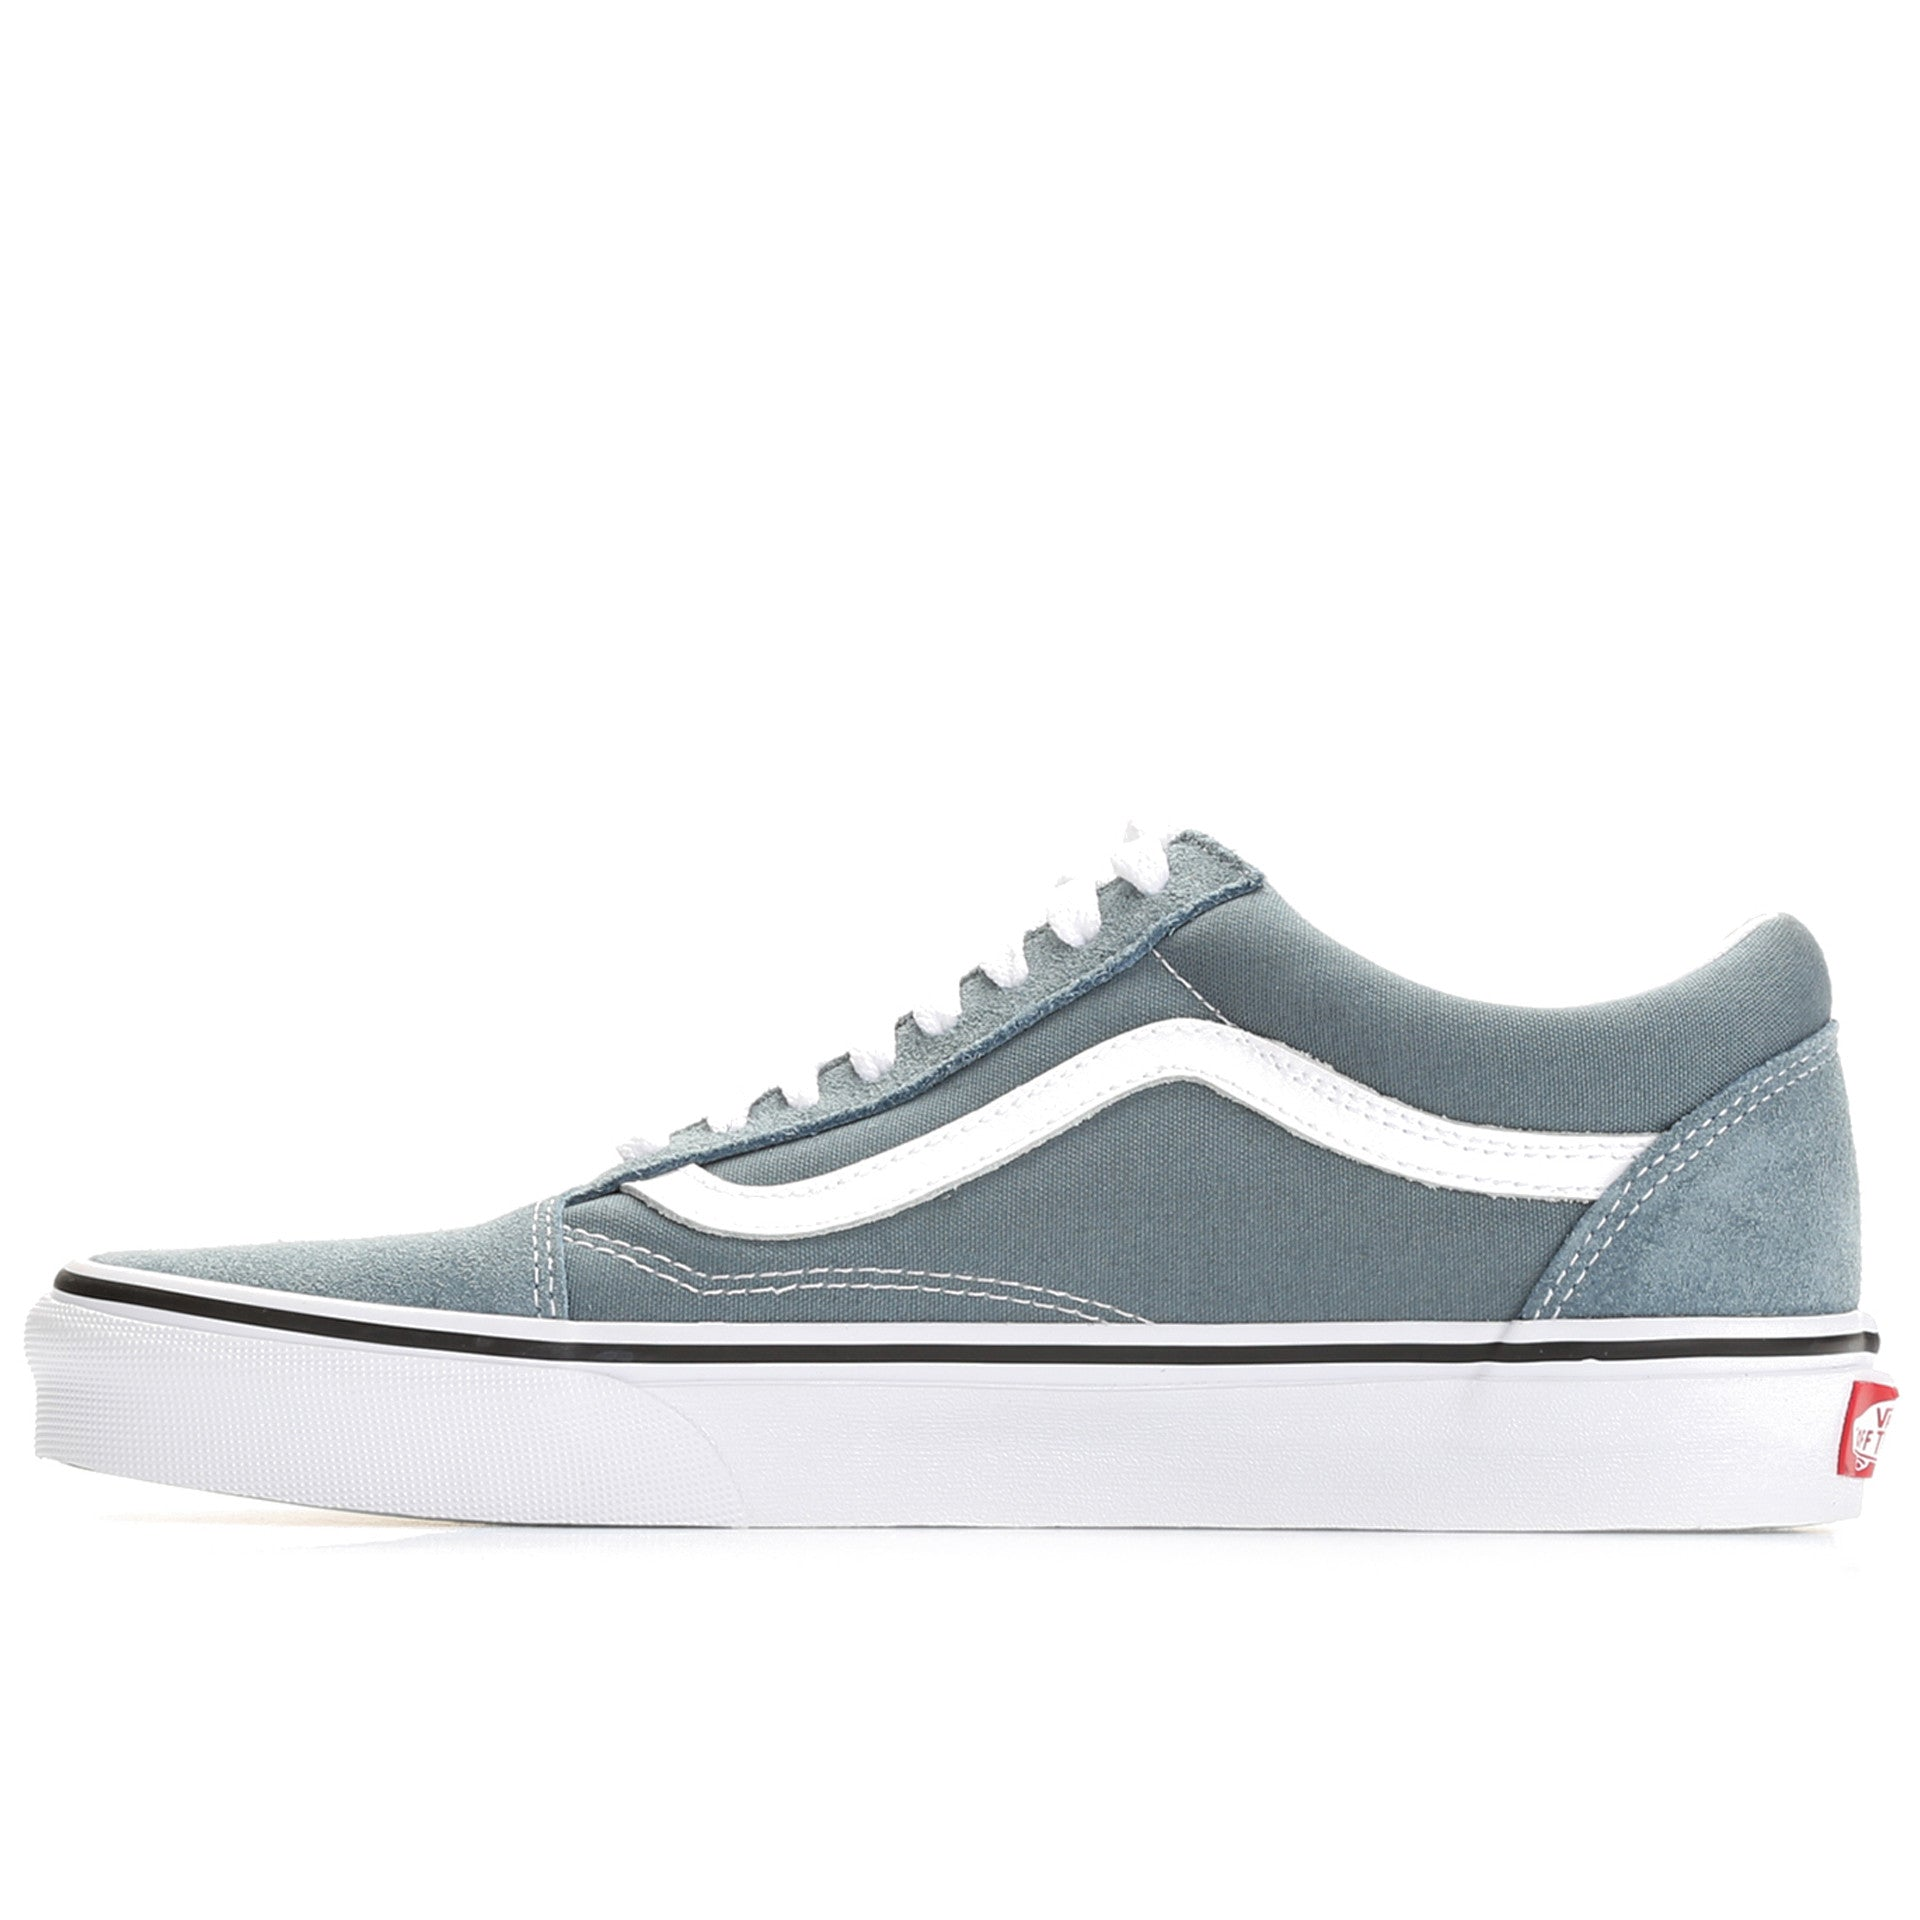 f254f3c2fce1 Vans Classic Old Skool - Goblin Blue - New Star